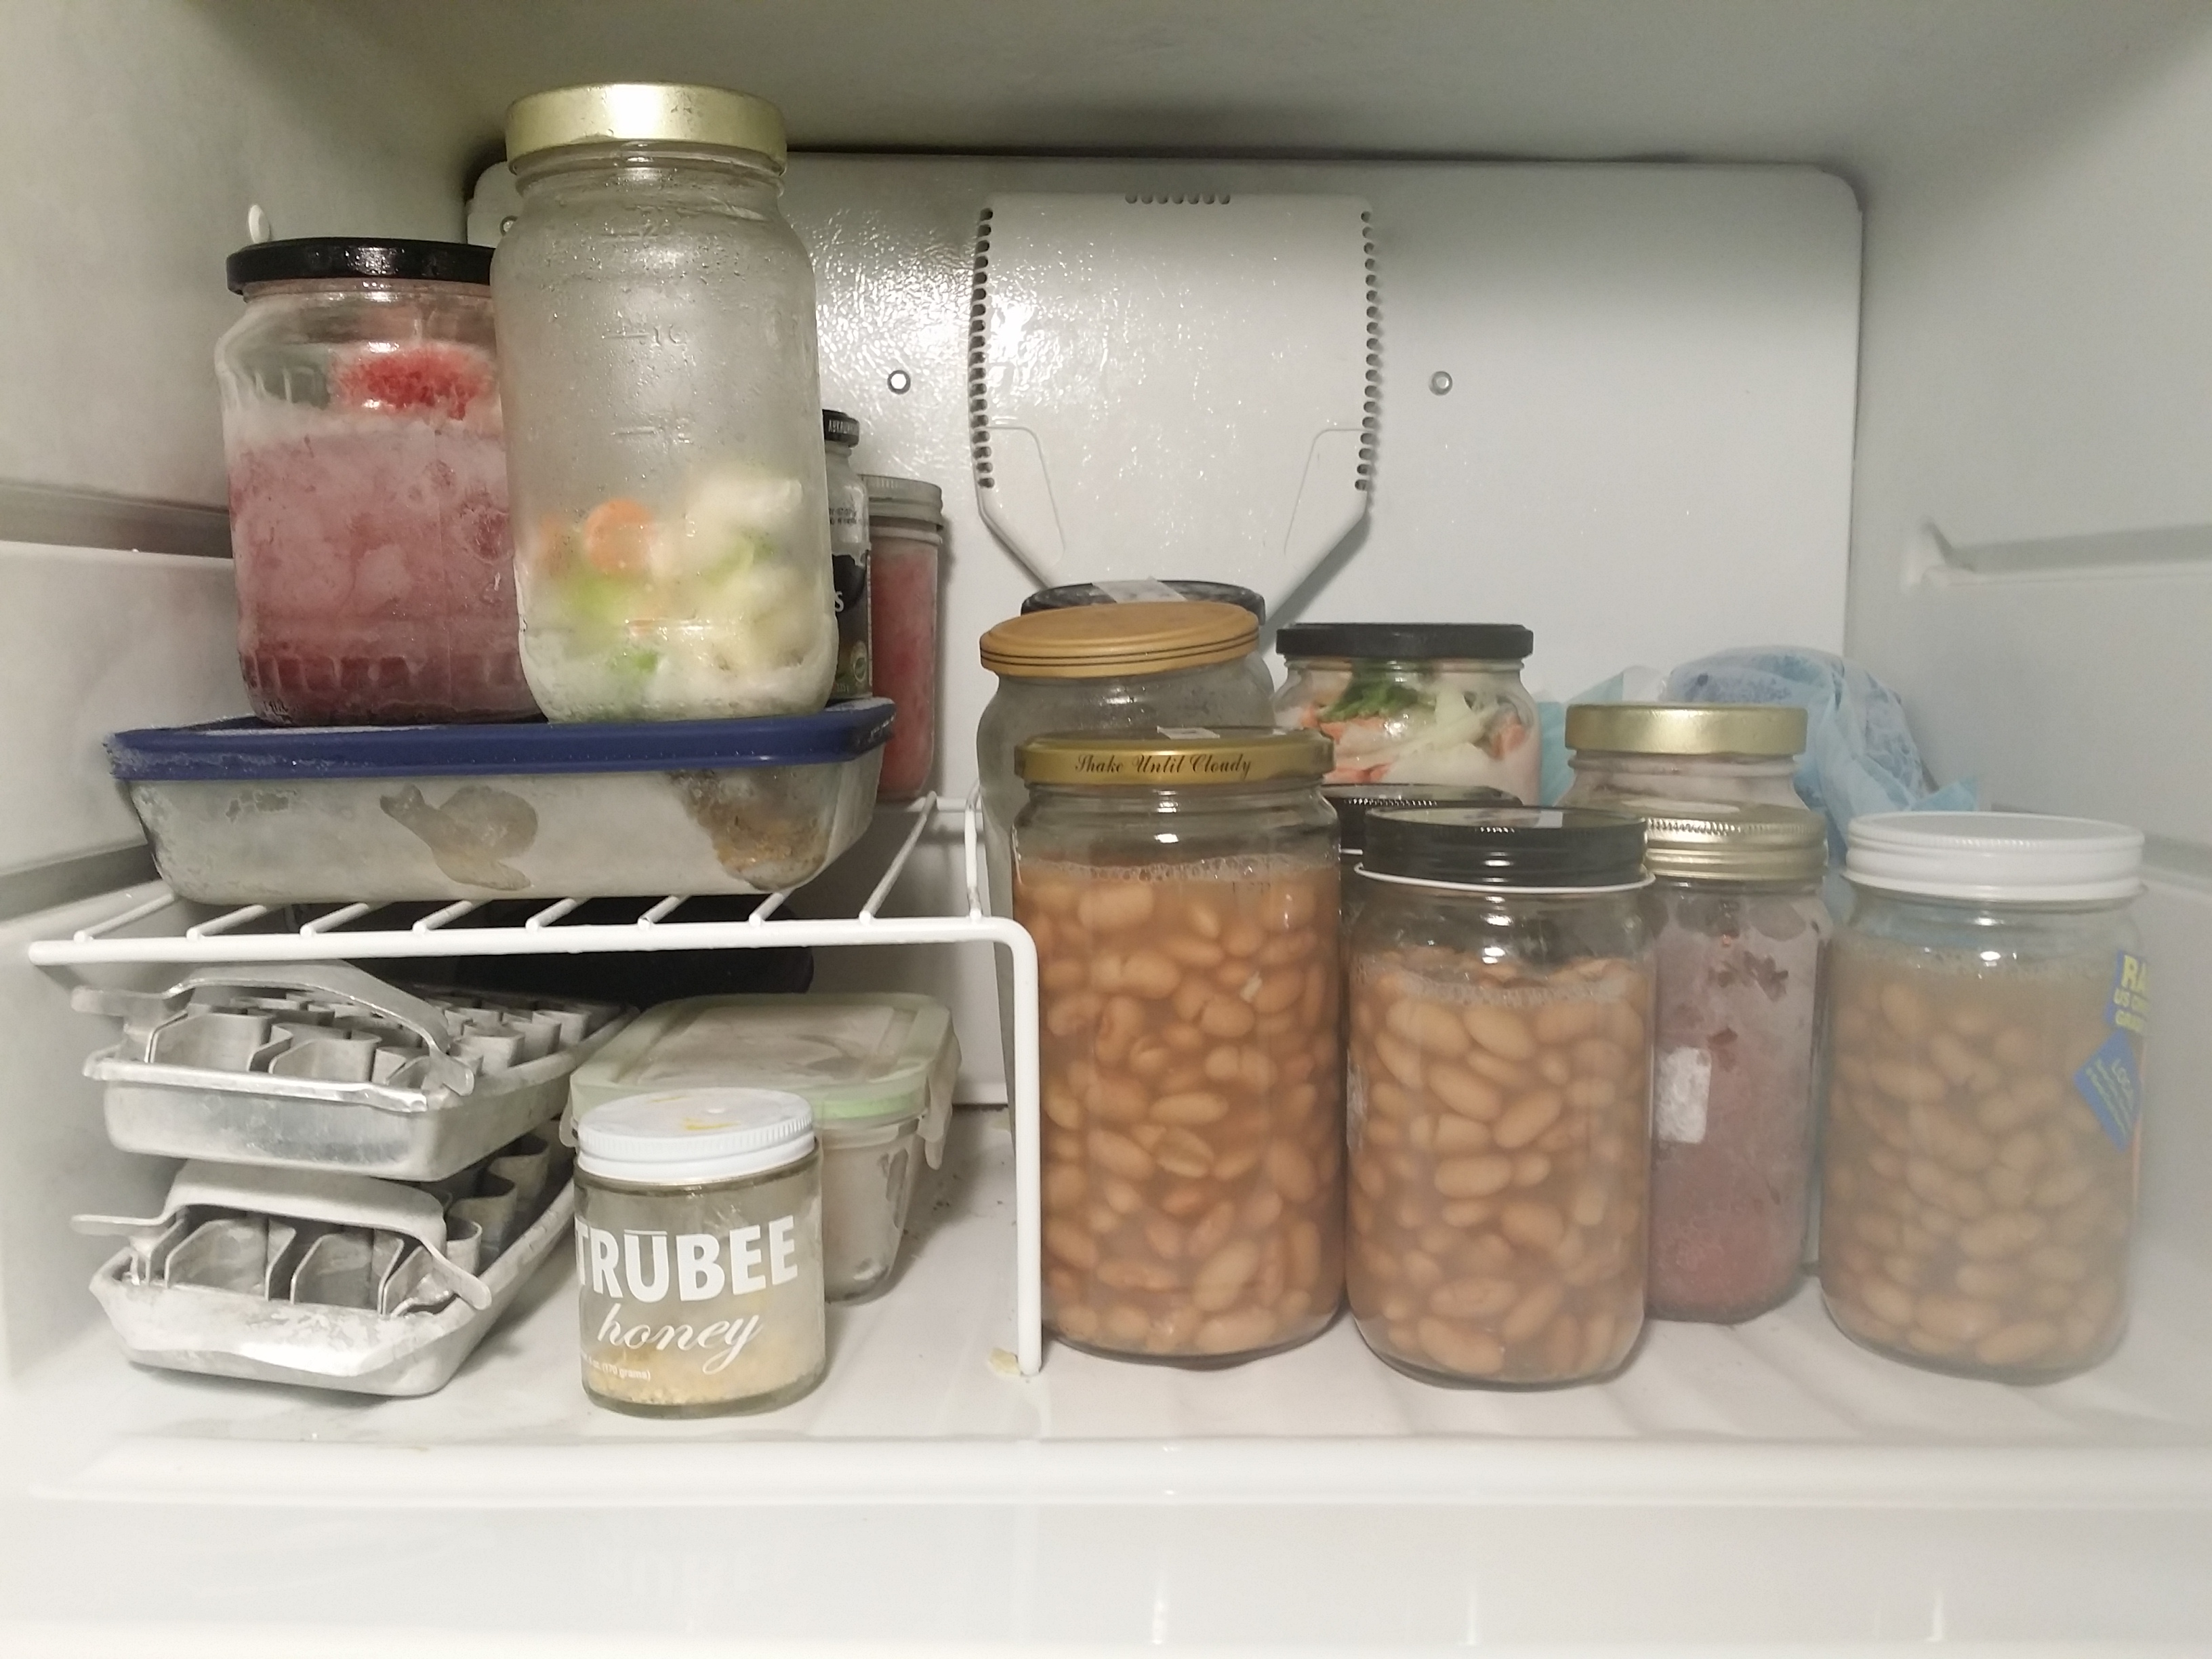 How to Freeze Food Without Using Plastic Posted on January 6, March 19, by The Zero-Waste Chef When I post pictures of my jar-filled freezer on social media, I get lots of questions about it, usually along the following lines.